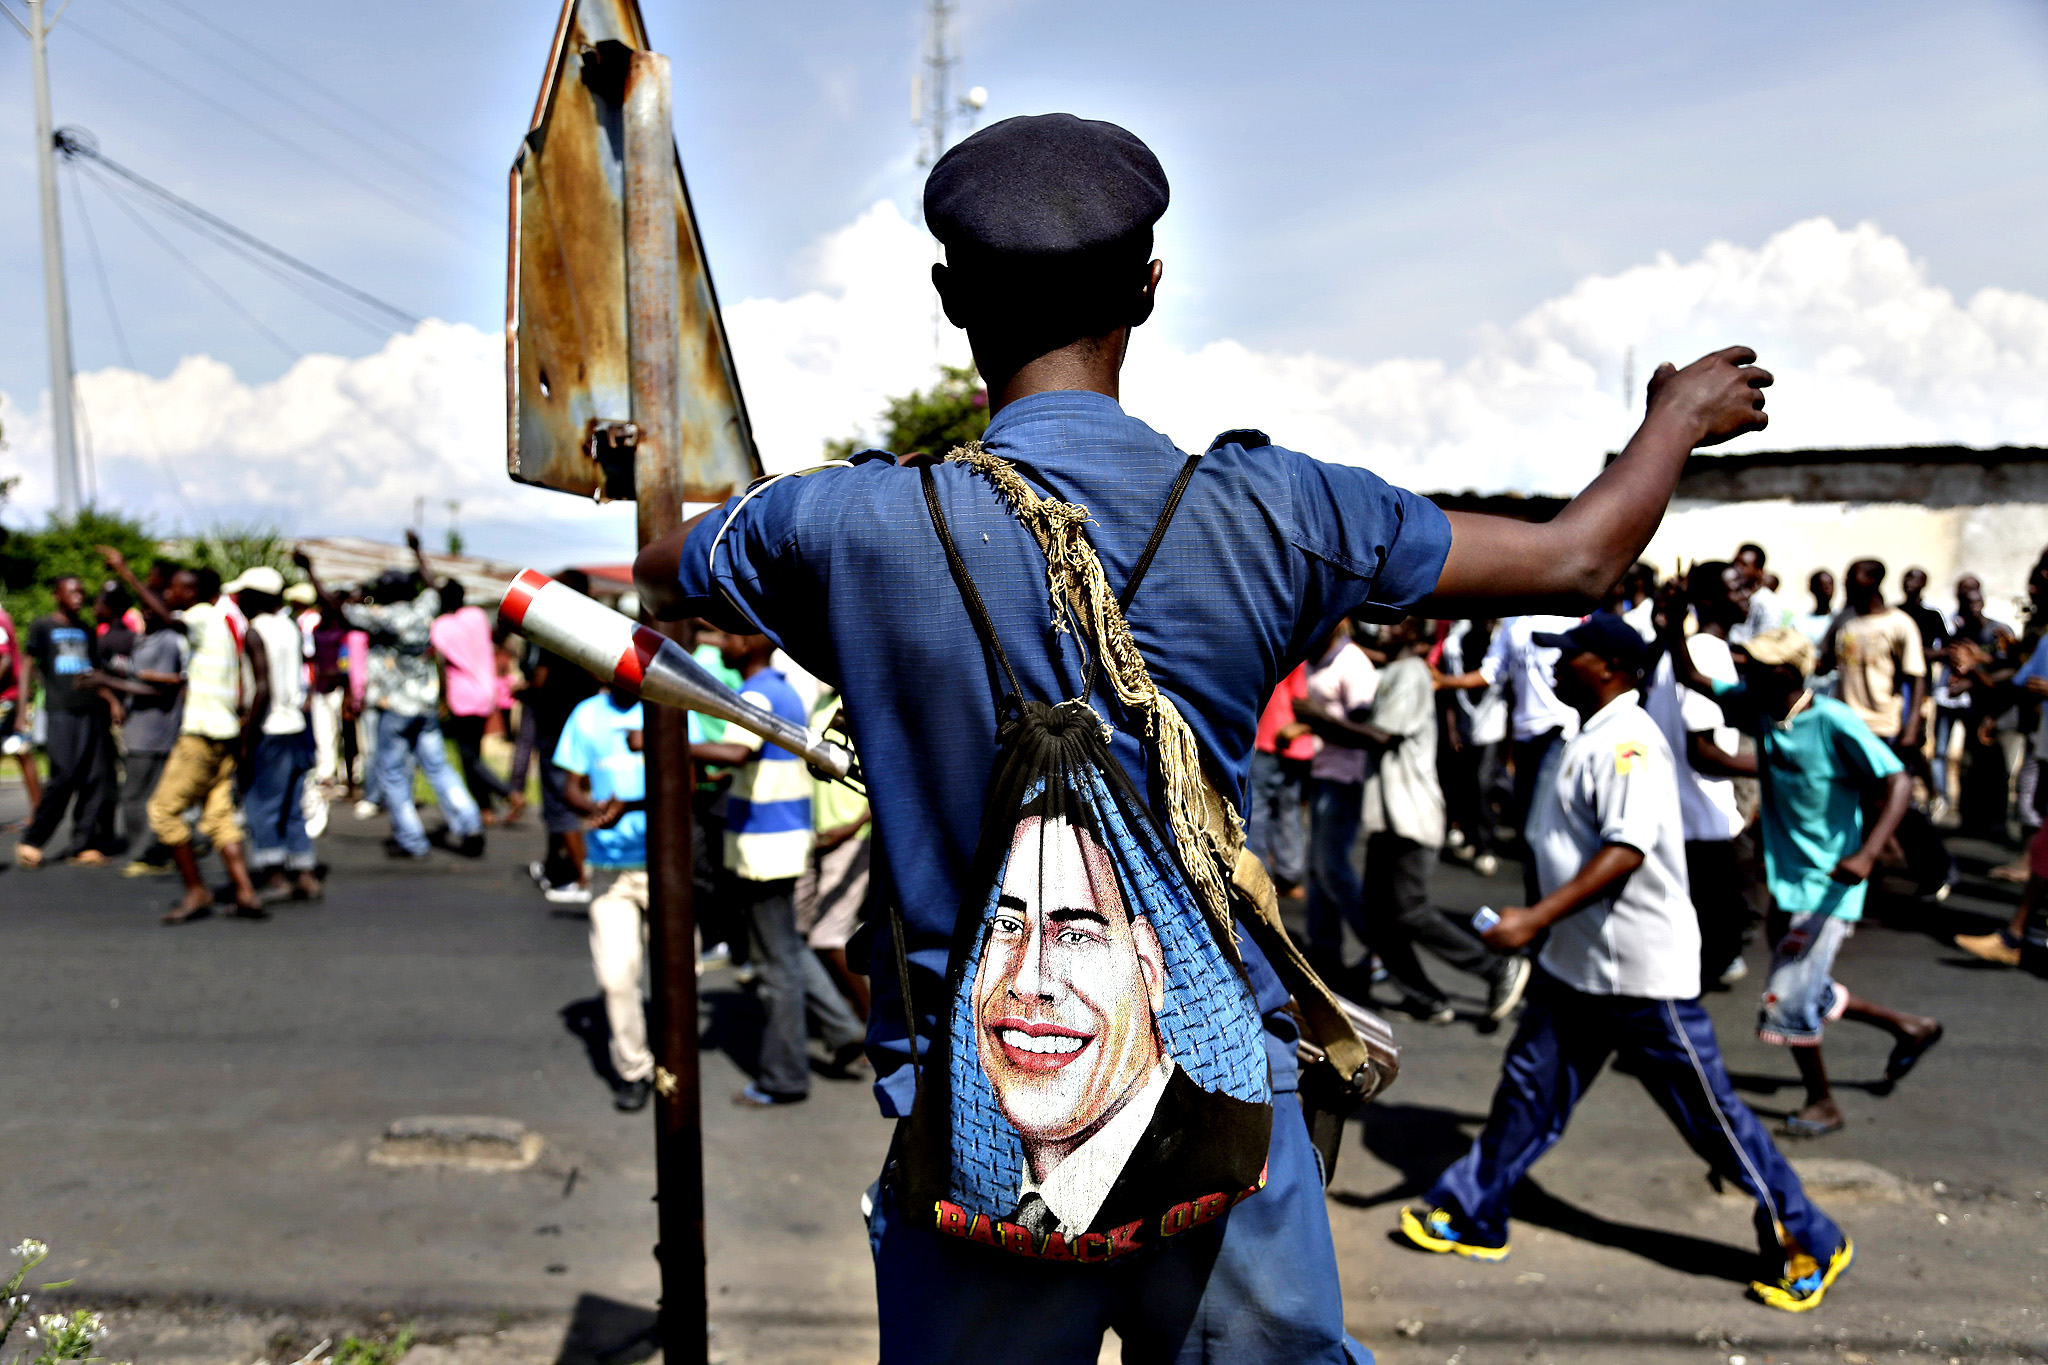 A police officer with a bag depicted the image of US President Barack Obama, stands on patrol as protesters march through the Musaga district of Bujumbura, in Burundi, Monday, May 11, 2015.  Police and army negotiated with over 2000 protesters to allow delivery trucks to enter the city. One person was killed in a clash with Burundi's police on Sunday in demonstrations in the capital, Bujumbura, as the government ordered a ban on any further street protests over President Pierre Nkurunziza's bid for a third term in power.